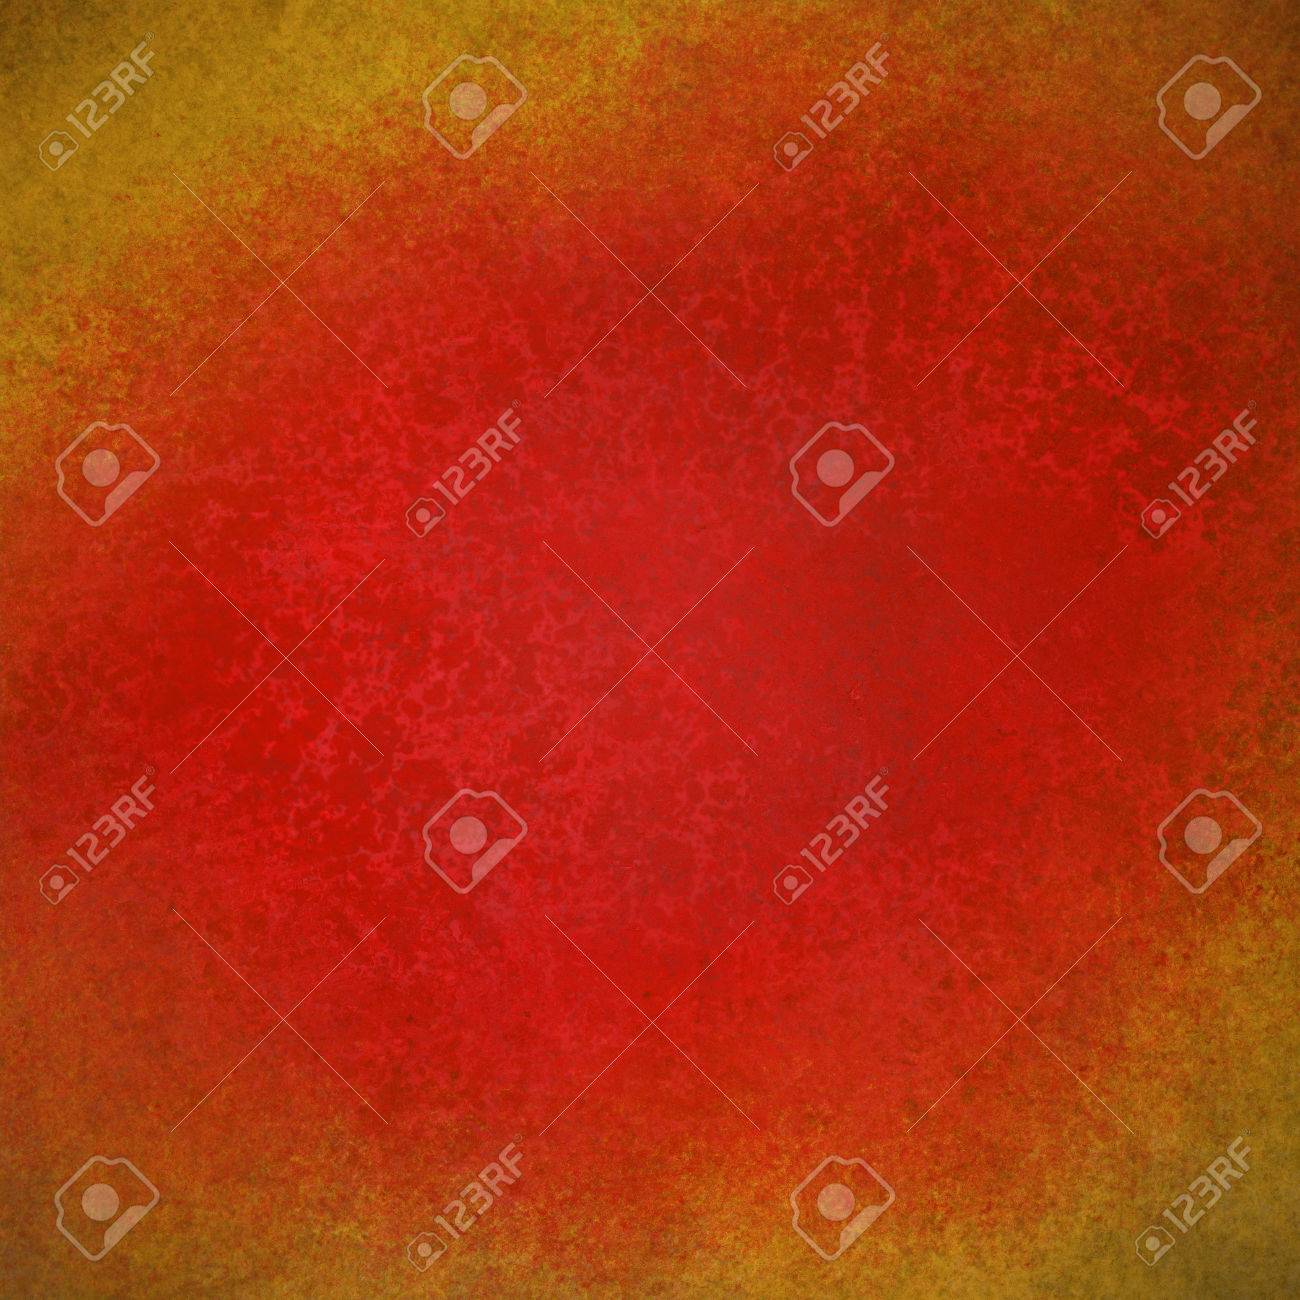 Bright Red Background Texture Paper Faint Rustic Gold Grunge Border Paint Design Old Distressed